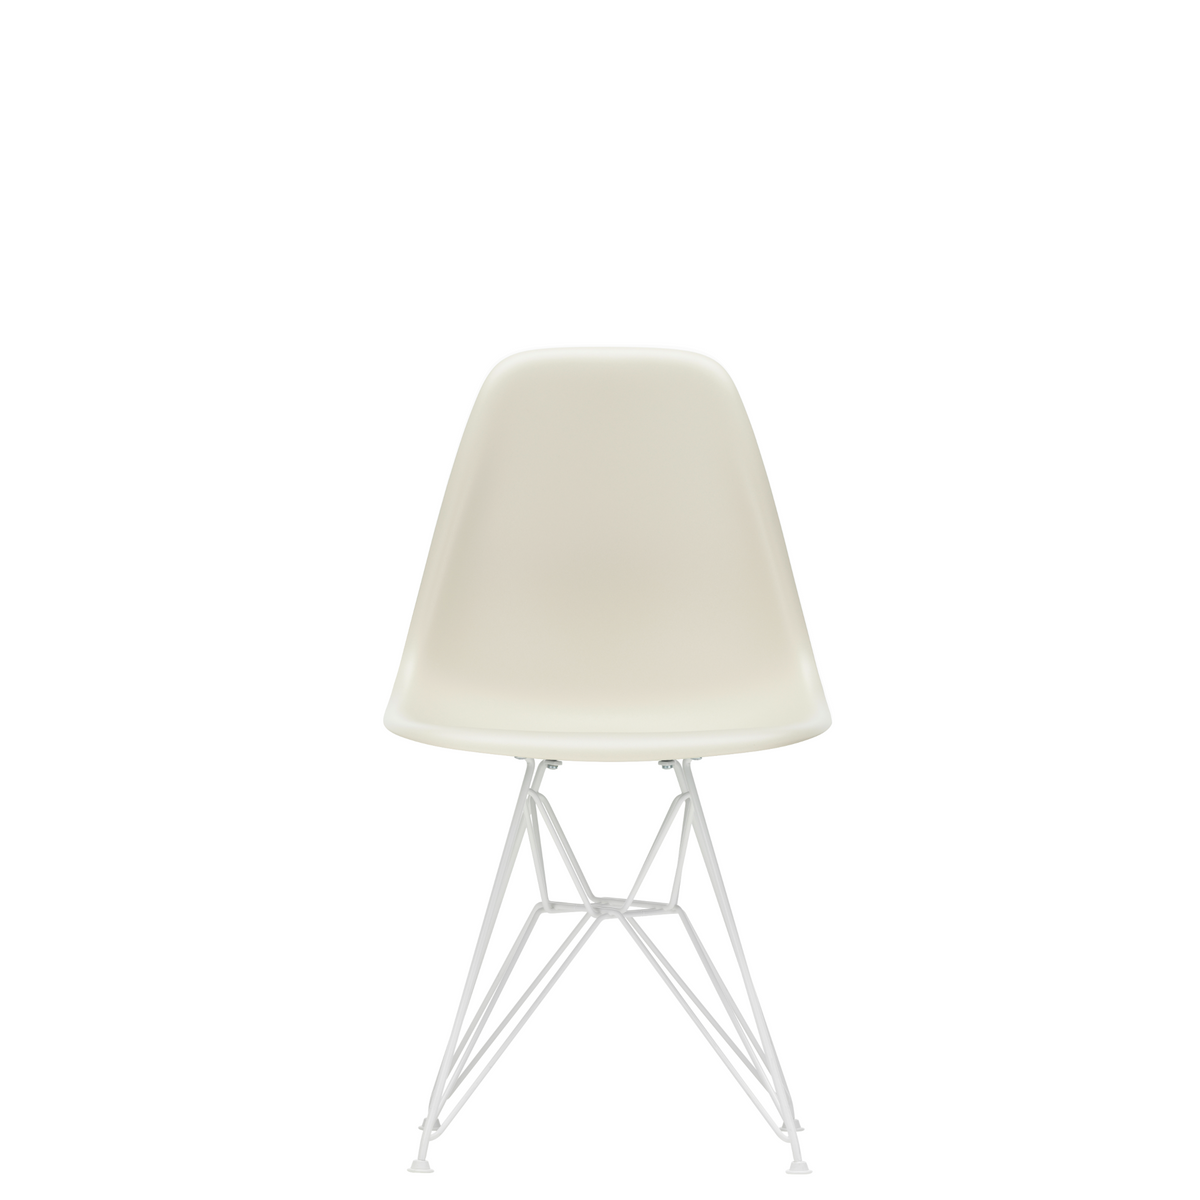 Vitra Eames Plastic Side Chair DSR Powder Coated for Outdoor Use. Pebble White Shell, White Powdercoated Base